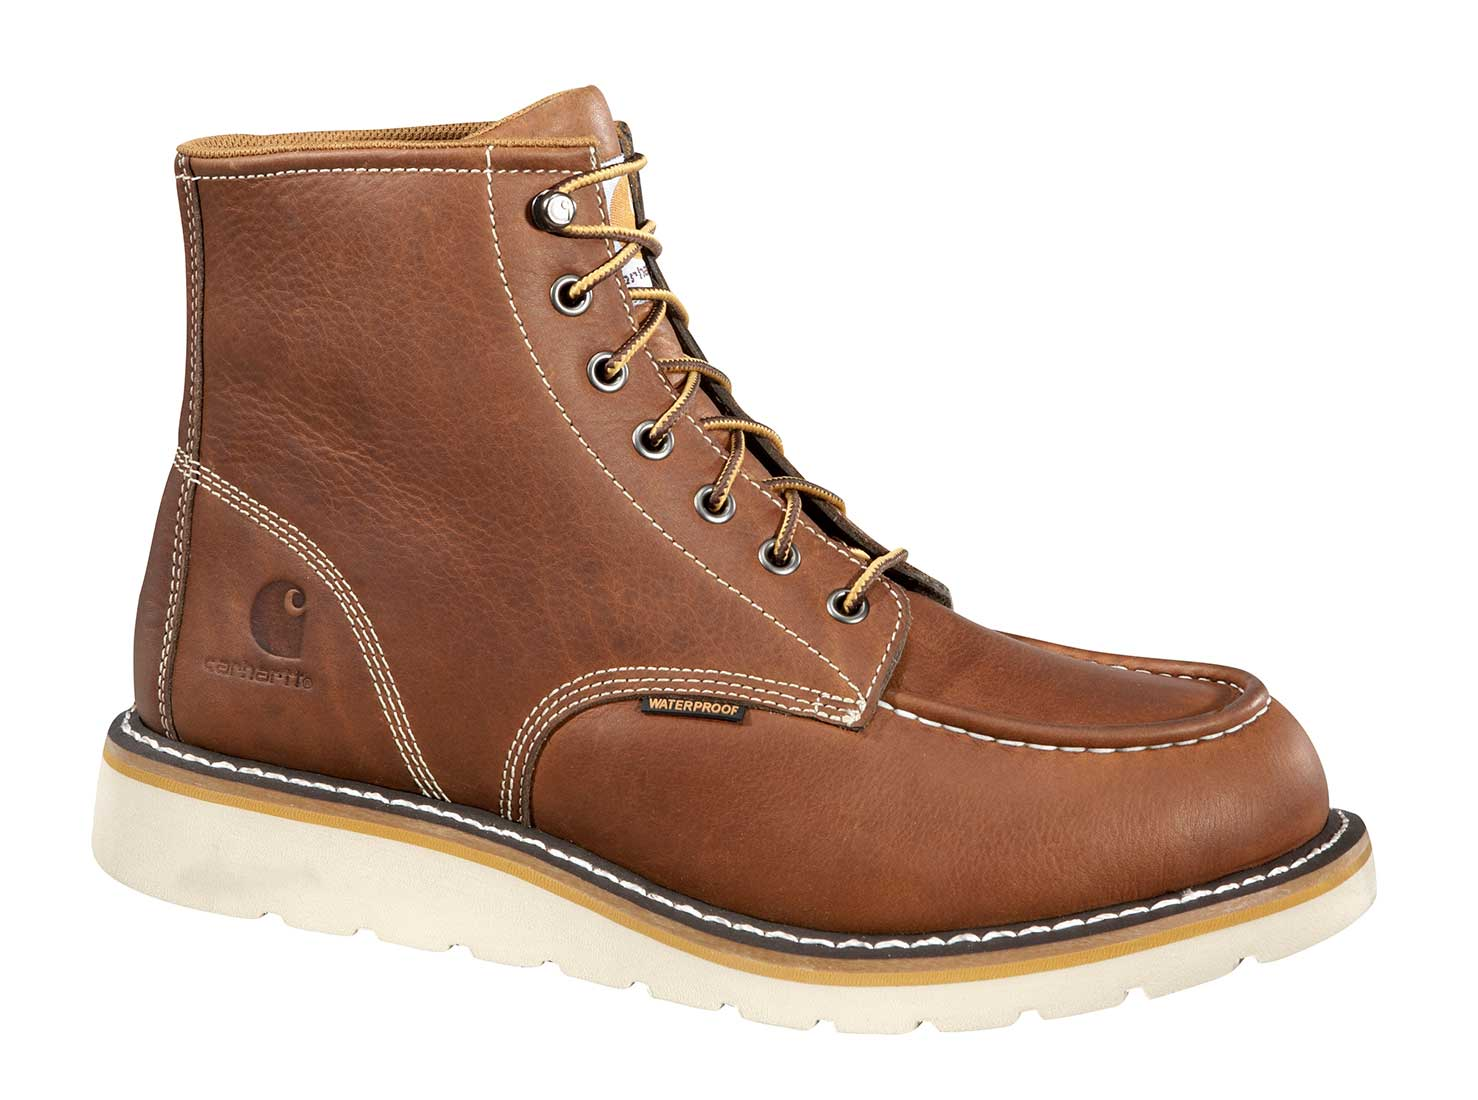 Carhartt Mens Tan Leather Waterproof Moc-Toe Wedge Soft Toe 6-inch lace-up Work Boot